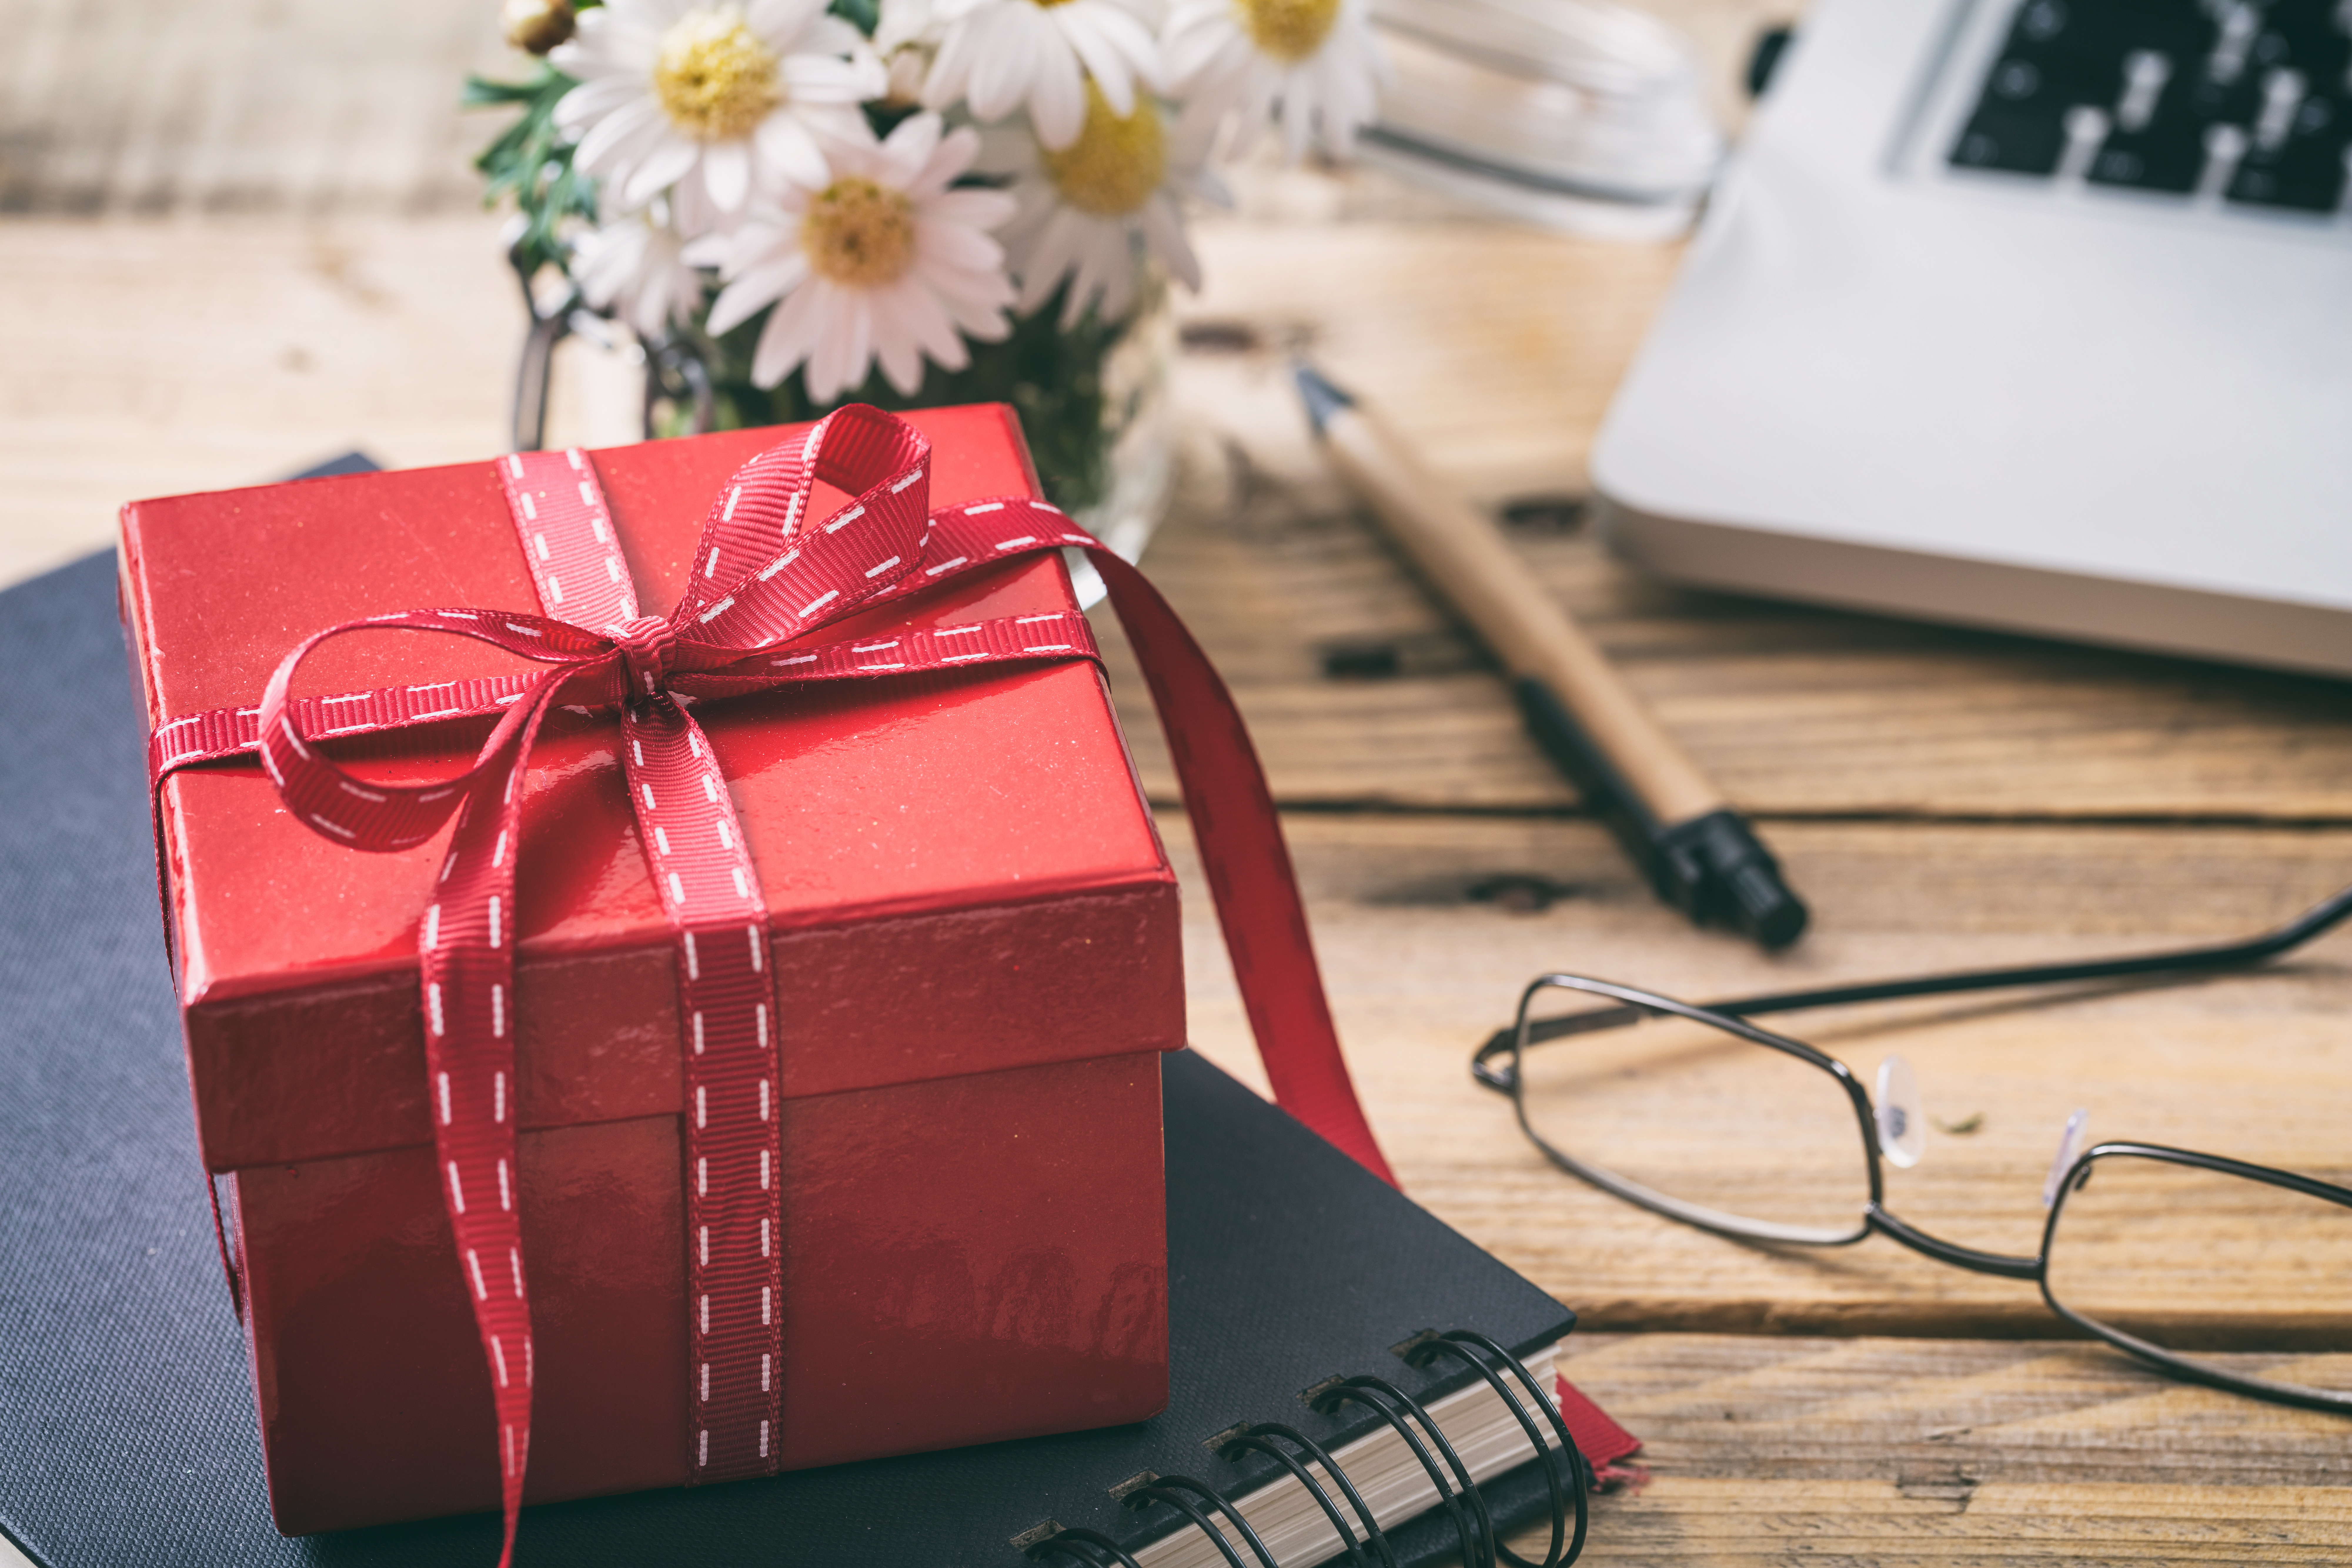 Featured Image: How to Give Office Gifts Like a Boss